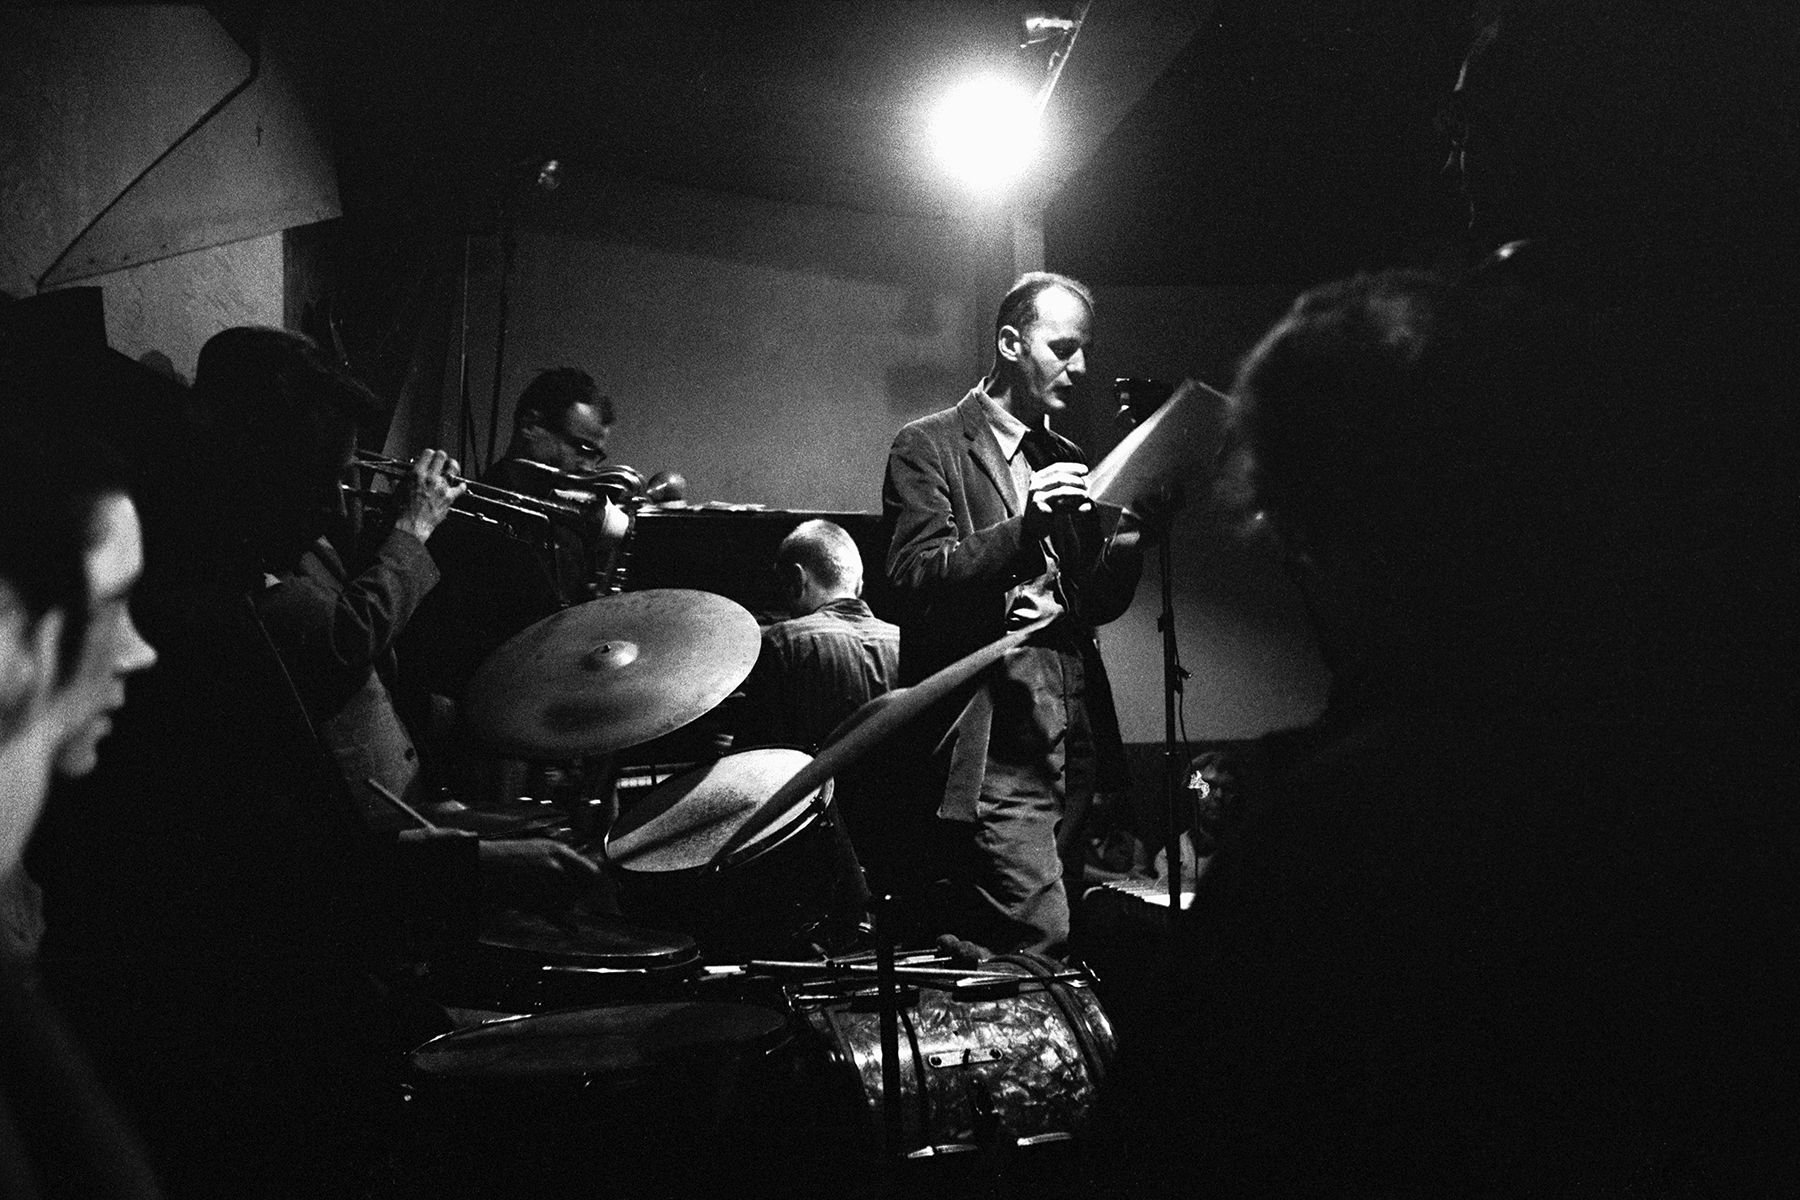 Accompanied by a backing band, American poet Lawrence Ferlinghetti gives a reading at the Jazz Cellar nightclub, San Francisco, California, February 1957. (Photo by Nat Farbman/The LIFE Picture Collection via Getty Images)